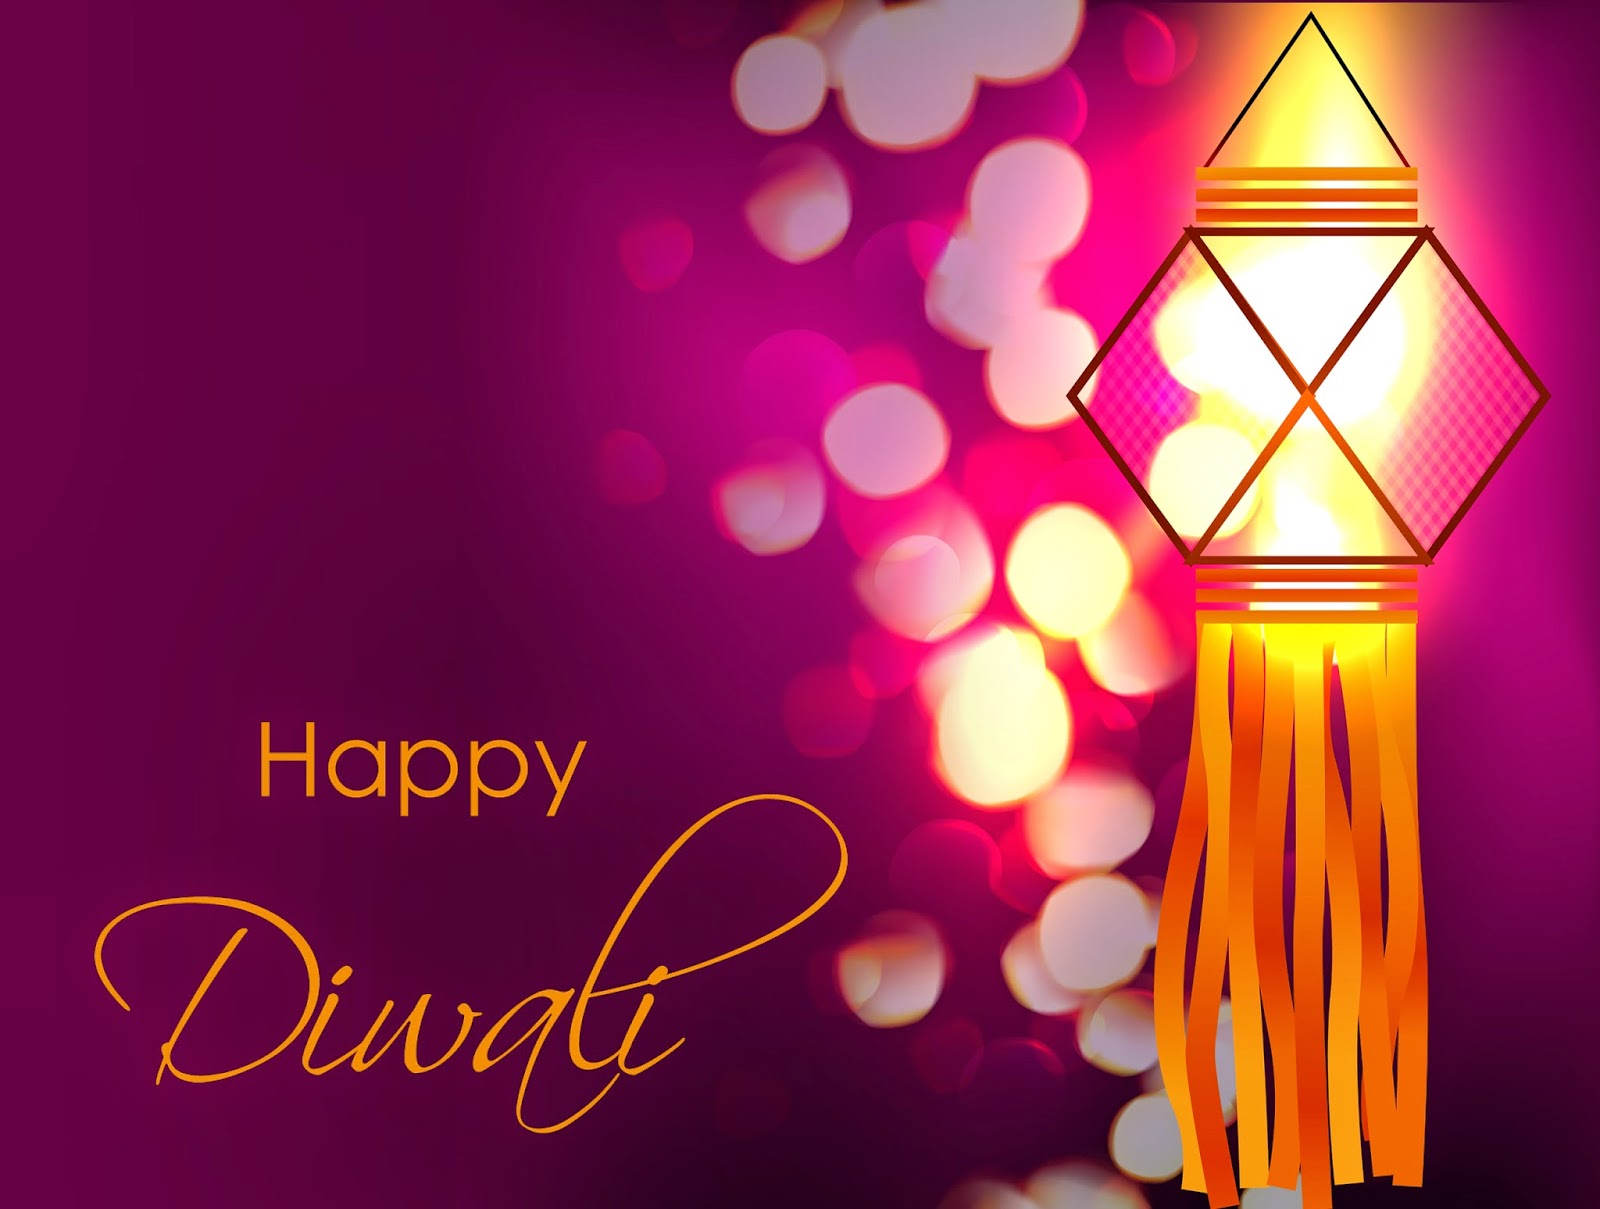 Happy Diwali 2014 Greeting And Wishes HD Wallpapers Free